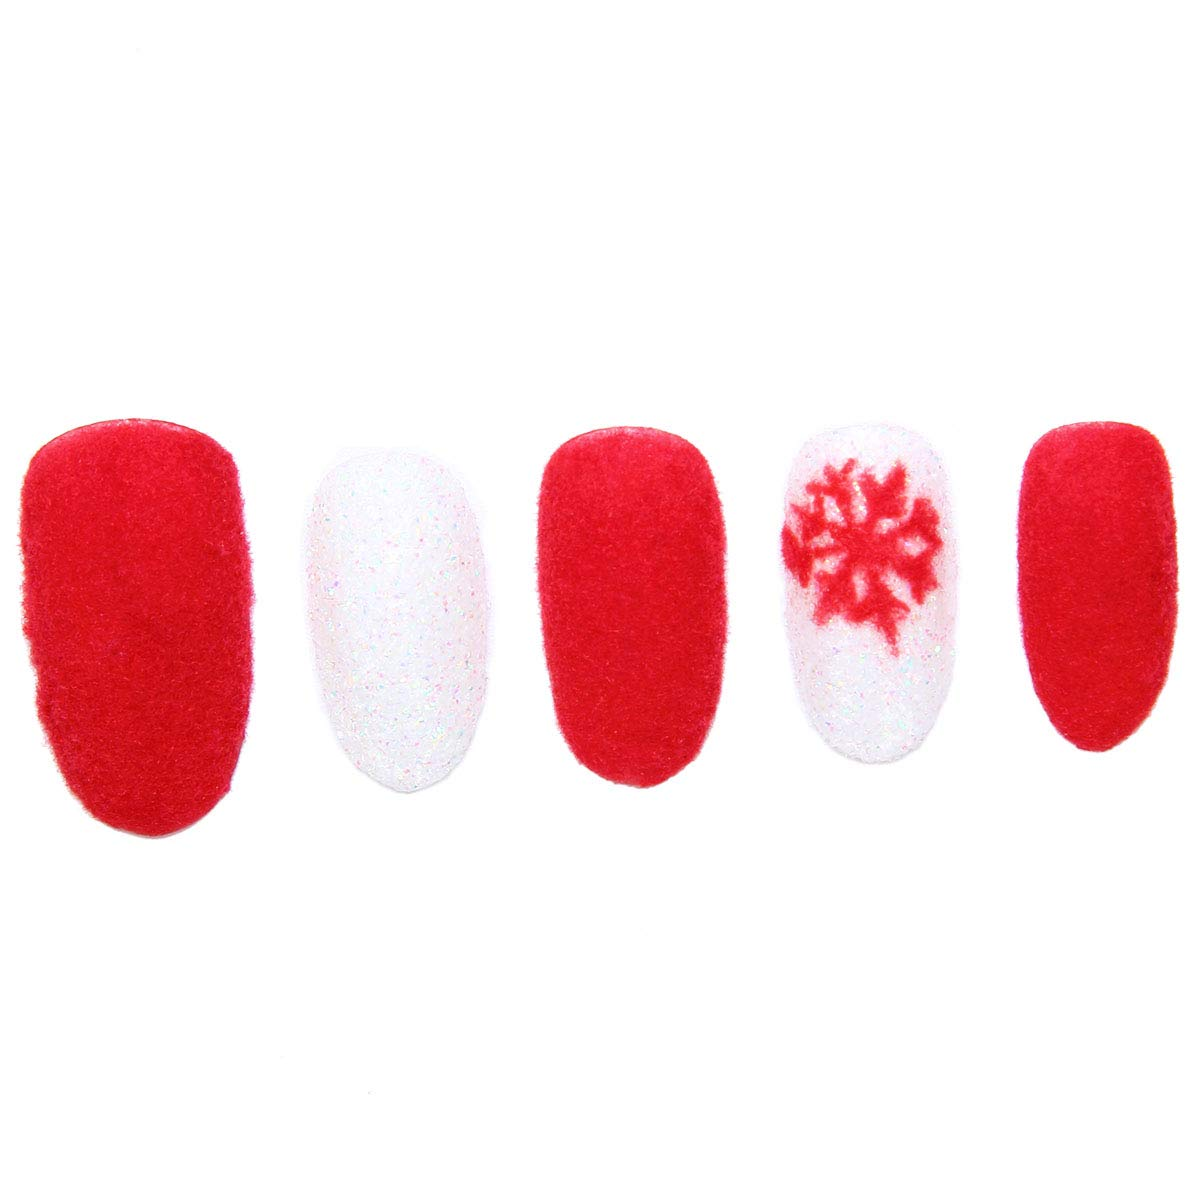 Amazon.com : 24 Pcs of 12 Different Sizes Handmade Velvet Powder Snowflake Finger Fake Nail for Christmas : Beauty